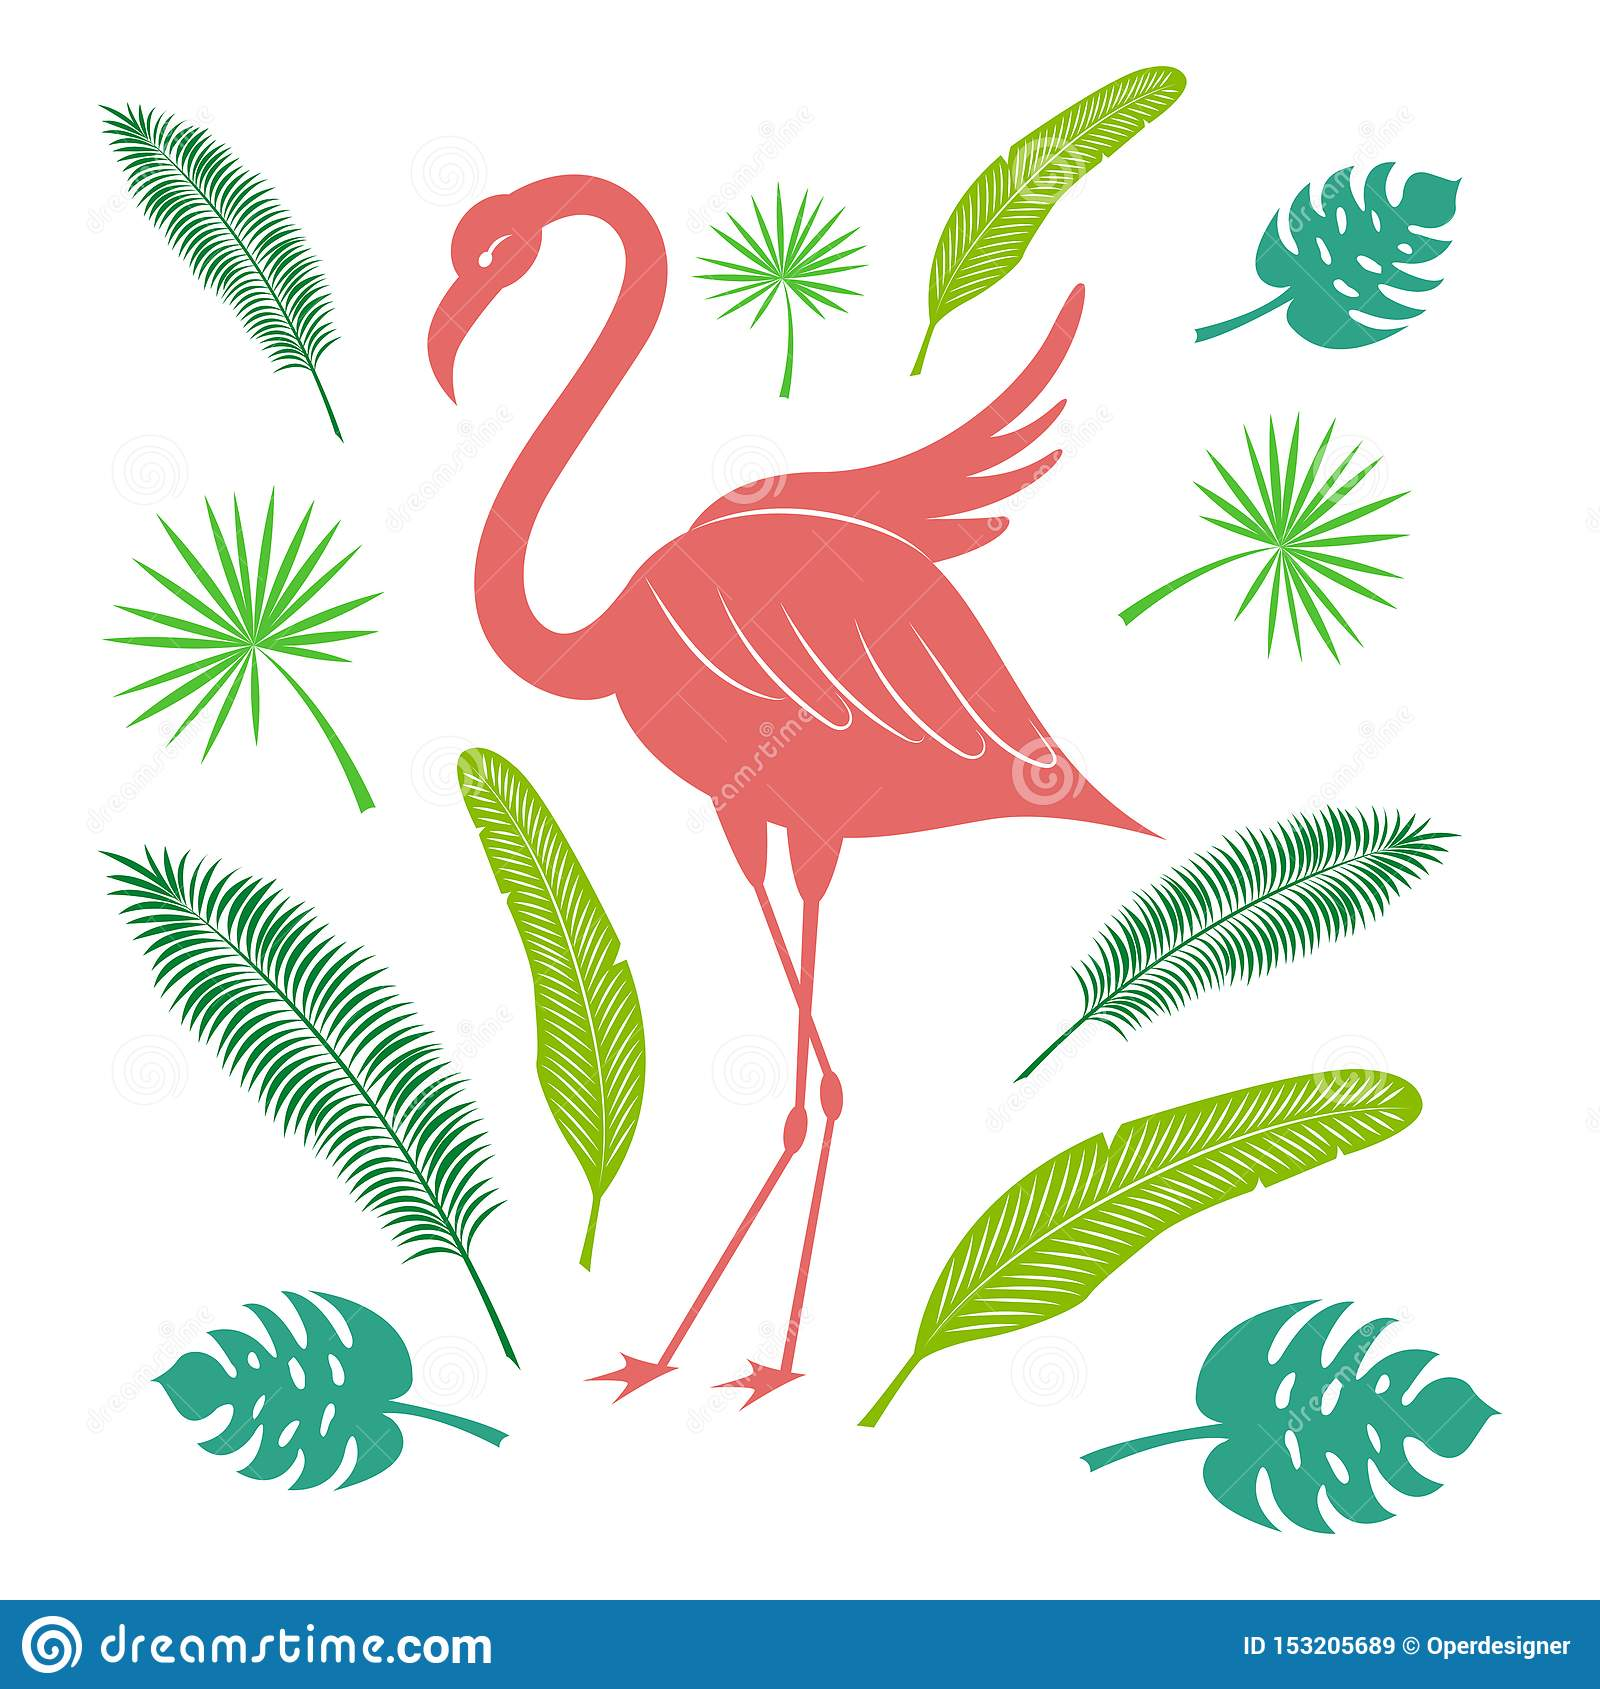 Flamingo and tropical leaves of palm and banana. Bright summer set. Stylized vector illustration.